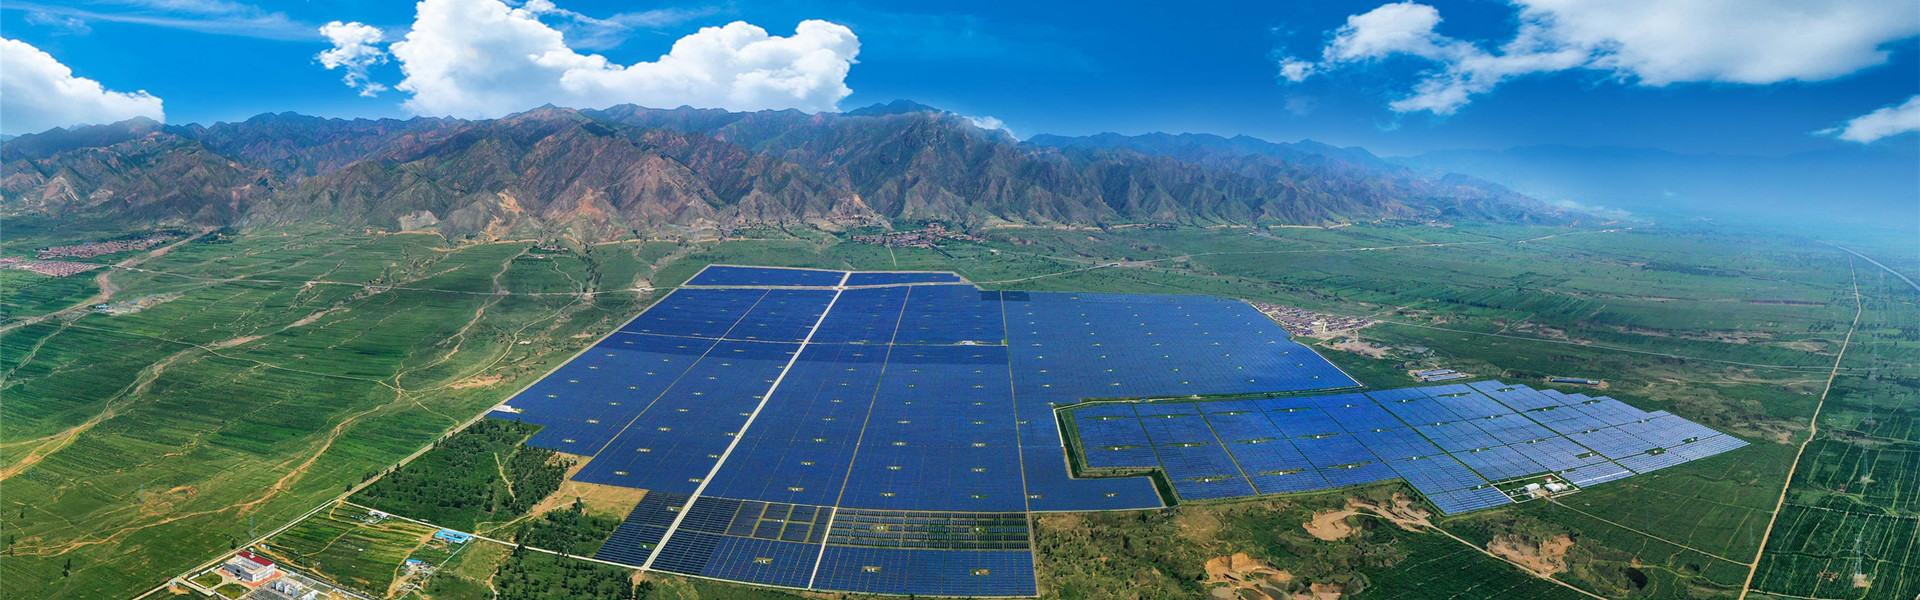 Datong remains unswerving in pursuit of green development